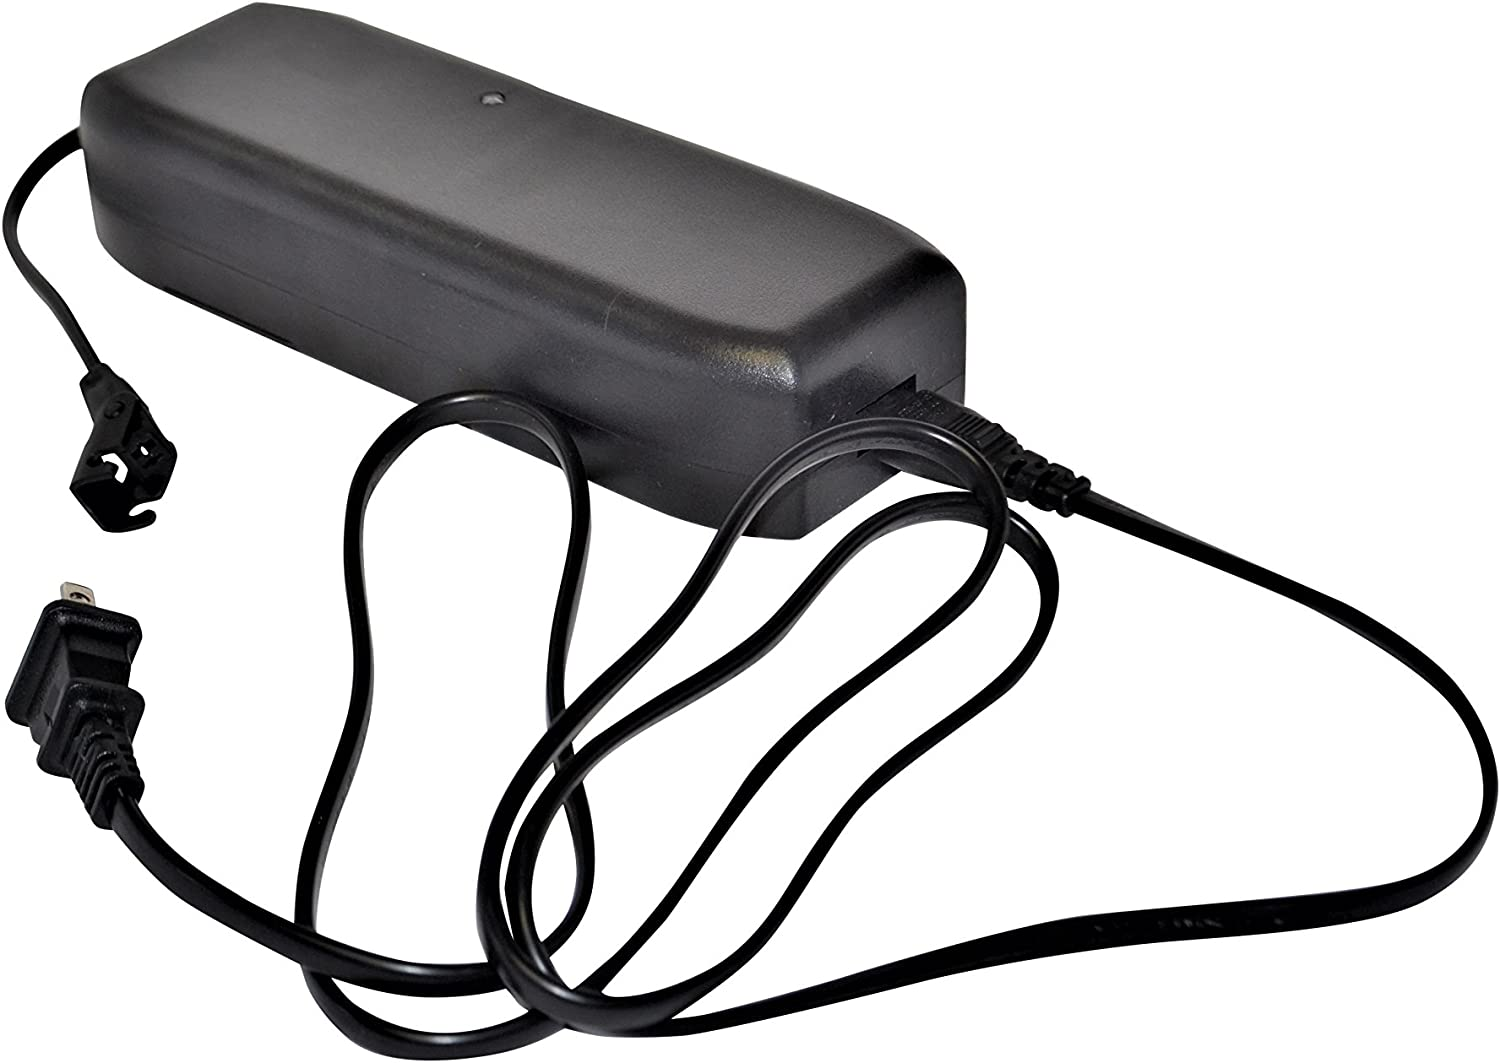 KD Kaidi Power Supply with Battery Backup for Power Recliners, KDDY001A